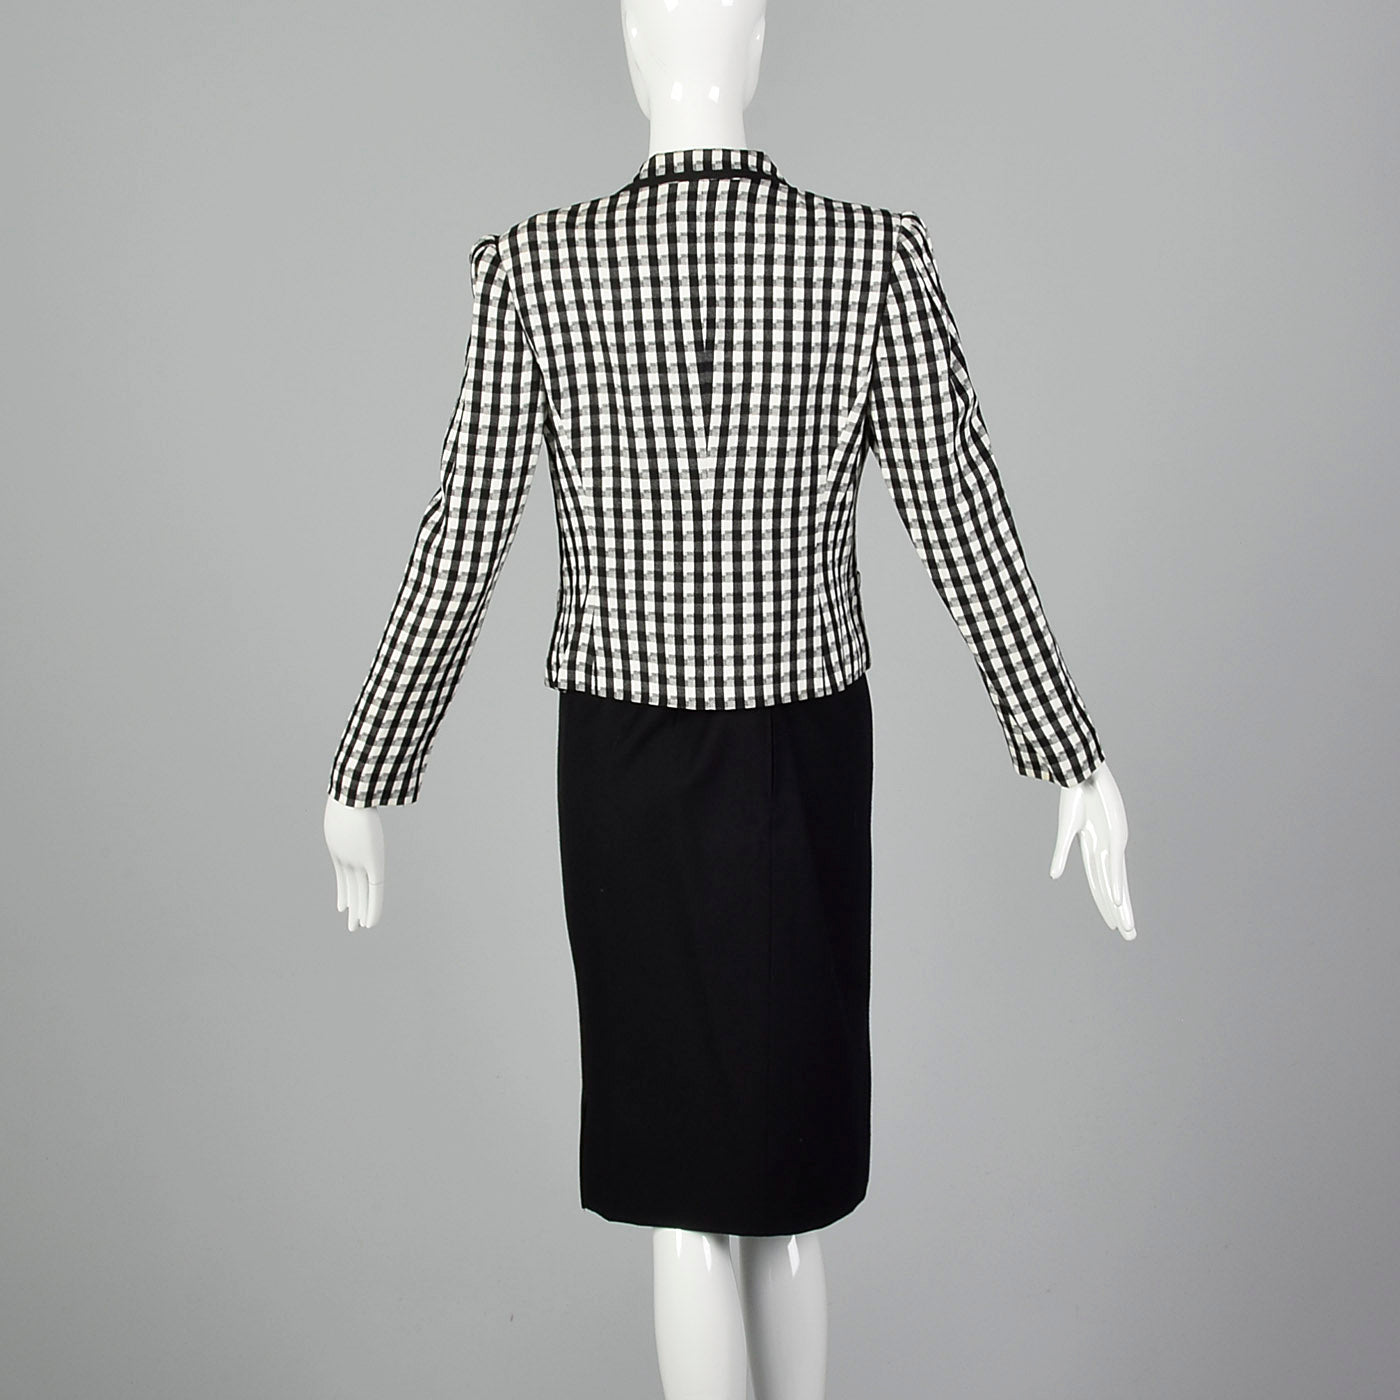 1980s Louis Feraud Black and White Checked Skirt Suit